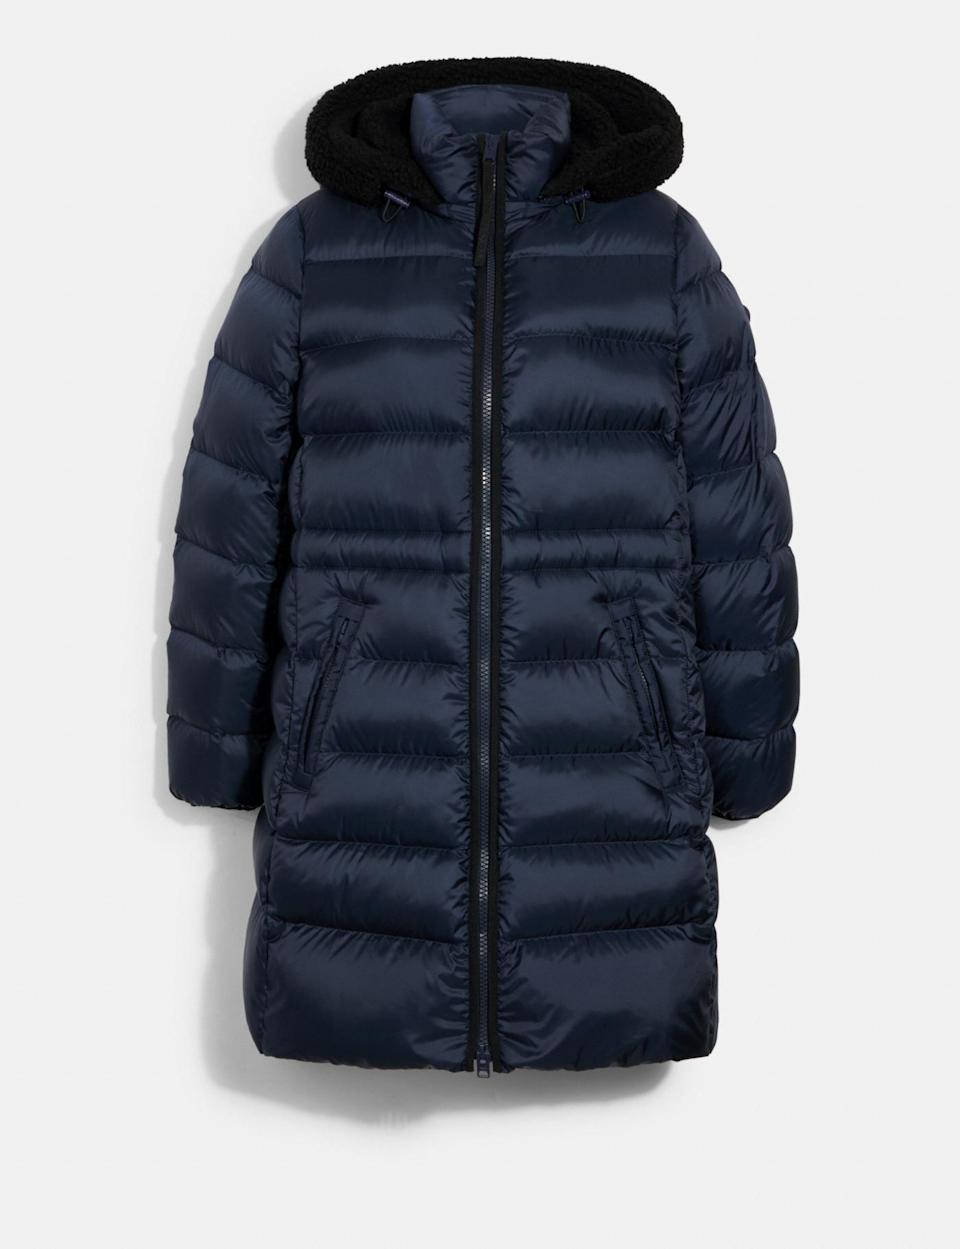 The Long Line Puffer by Coach.